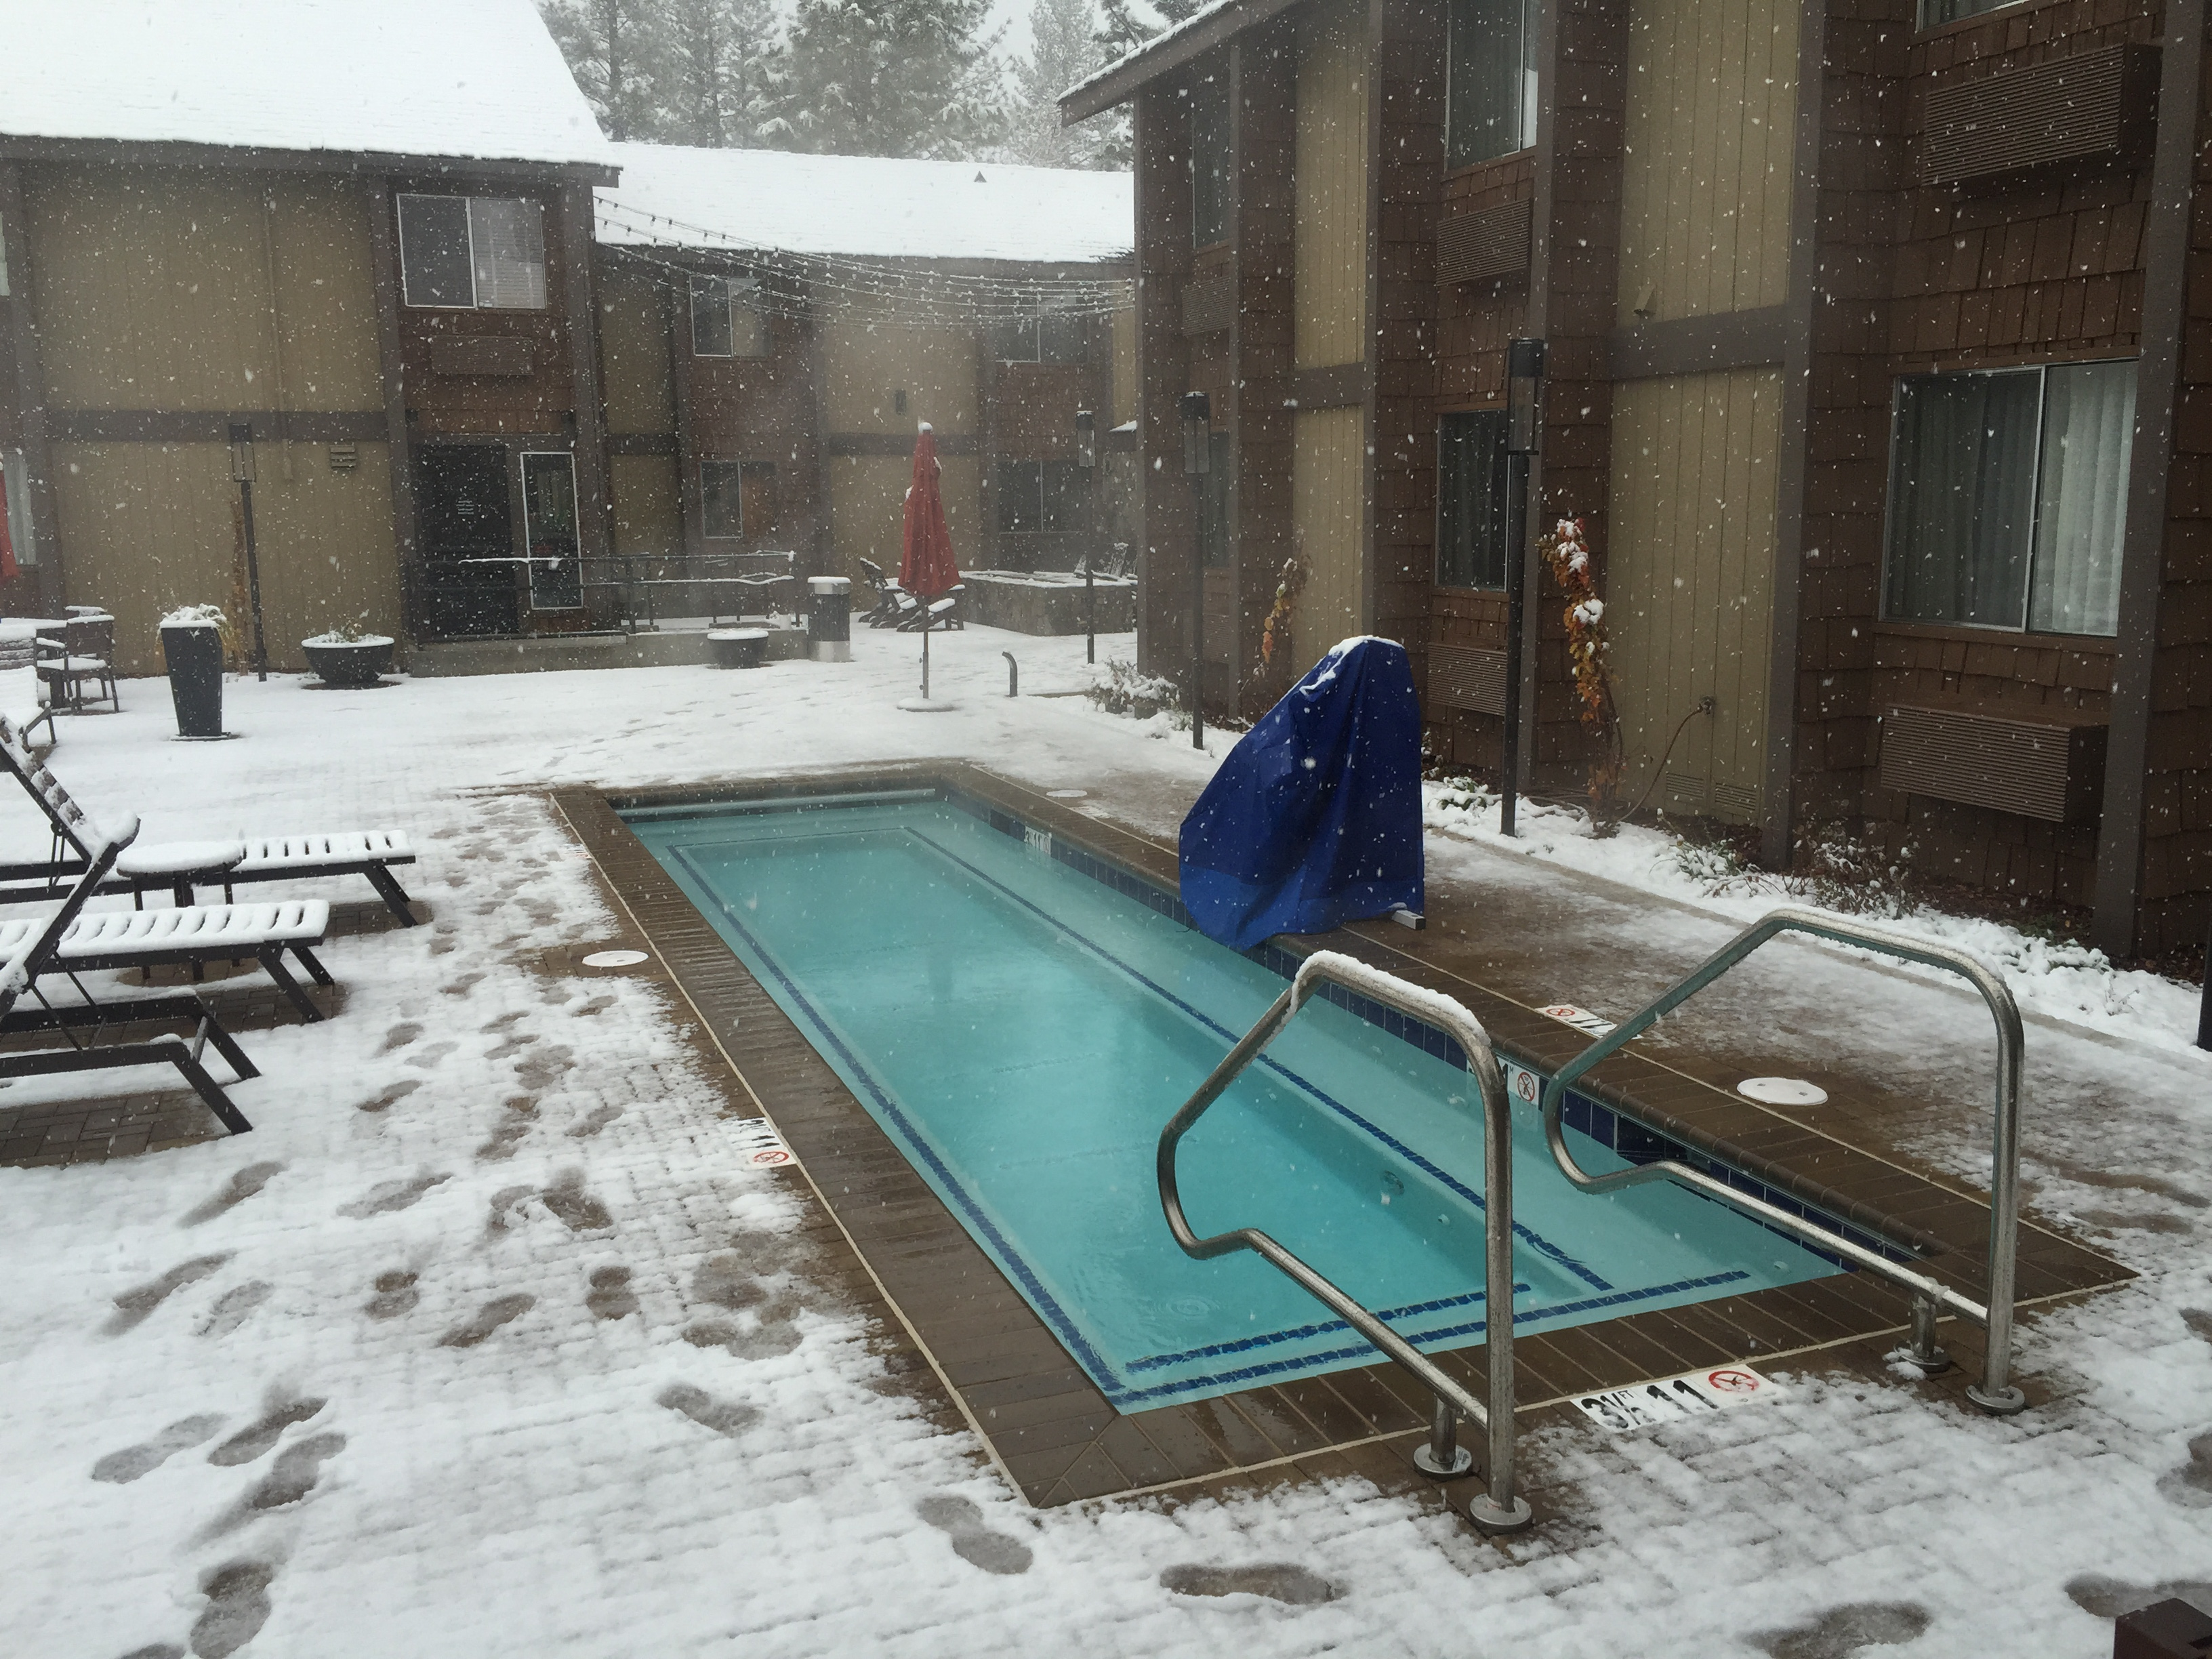 File:2015 11 02 10 21 56 A Heated Swimming Pool During A Snowstorm At A  Hotel Along Brockway Road In Truckee, California